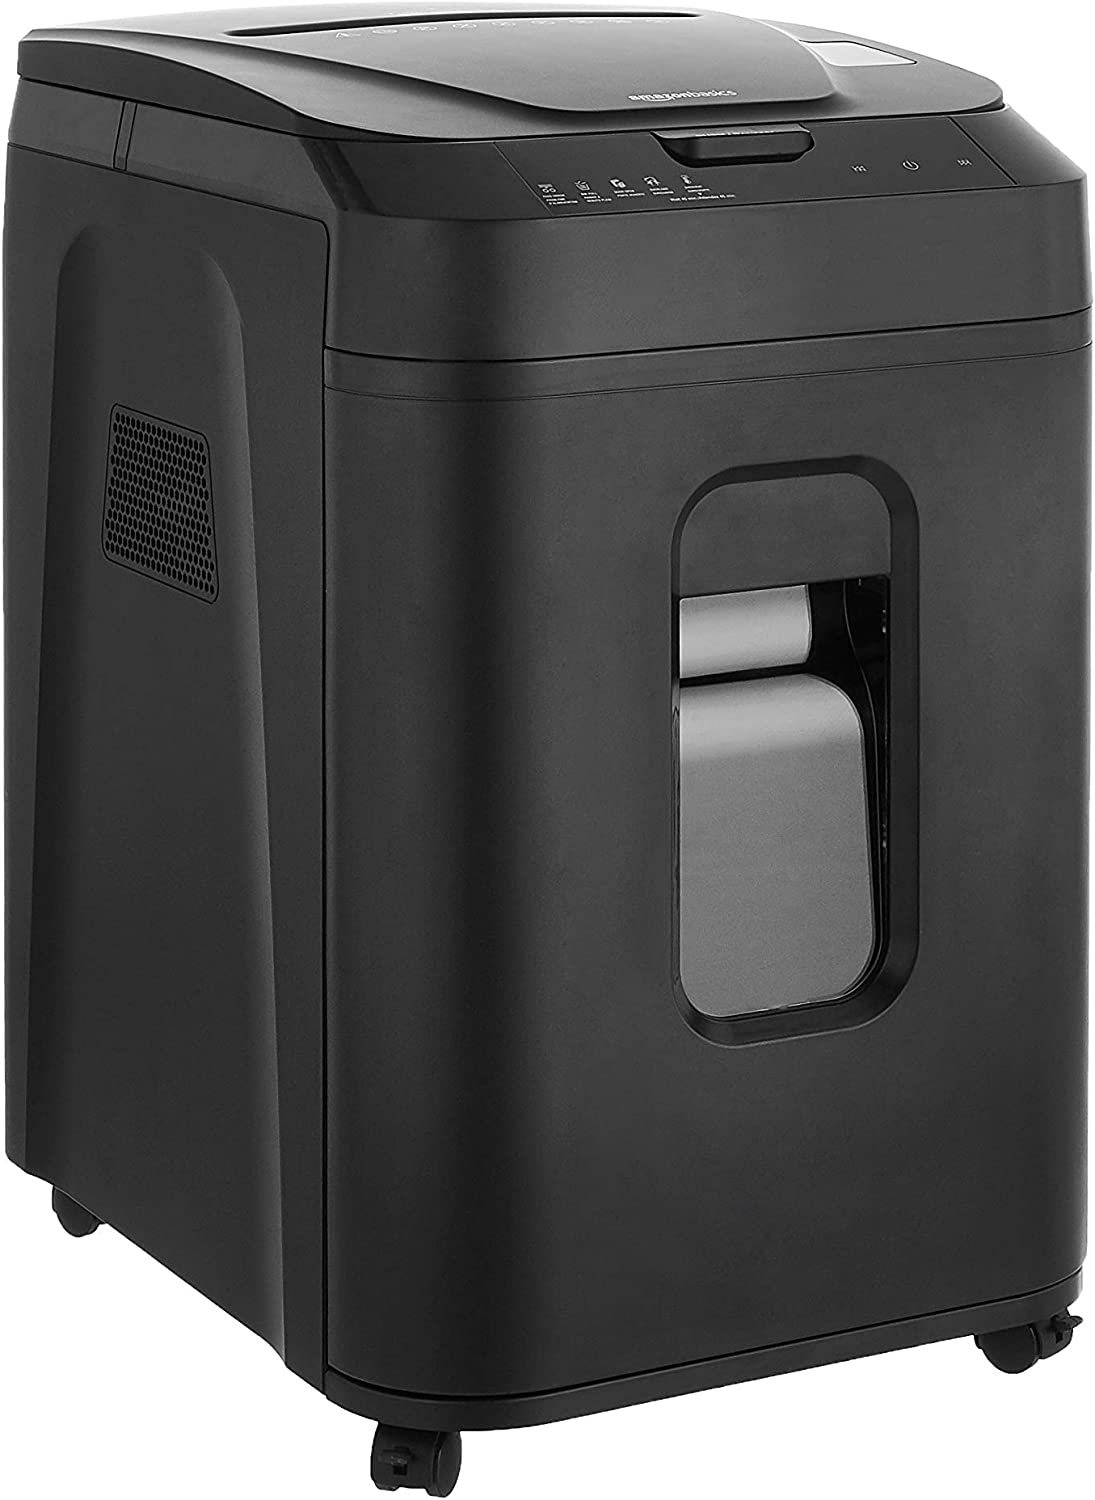 AmazonBasics 150-Sheet Autofeed Micro-Cut Paper Shredder